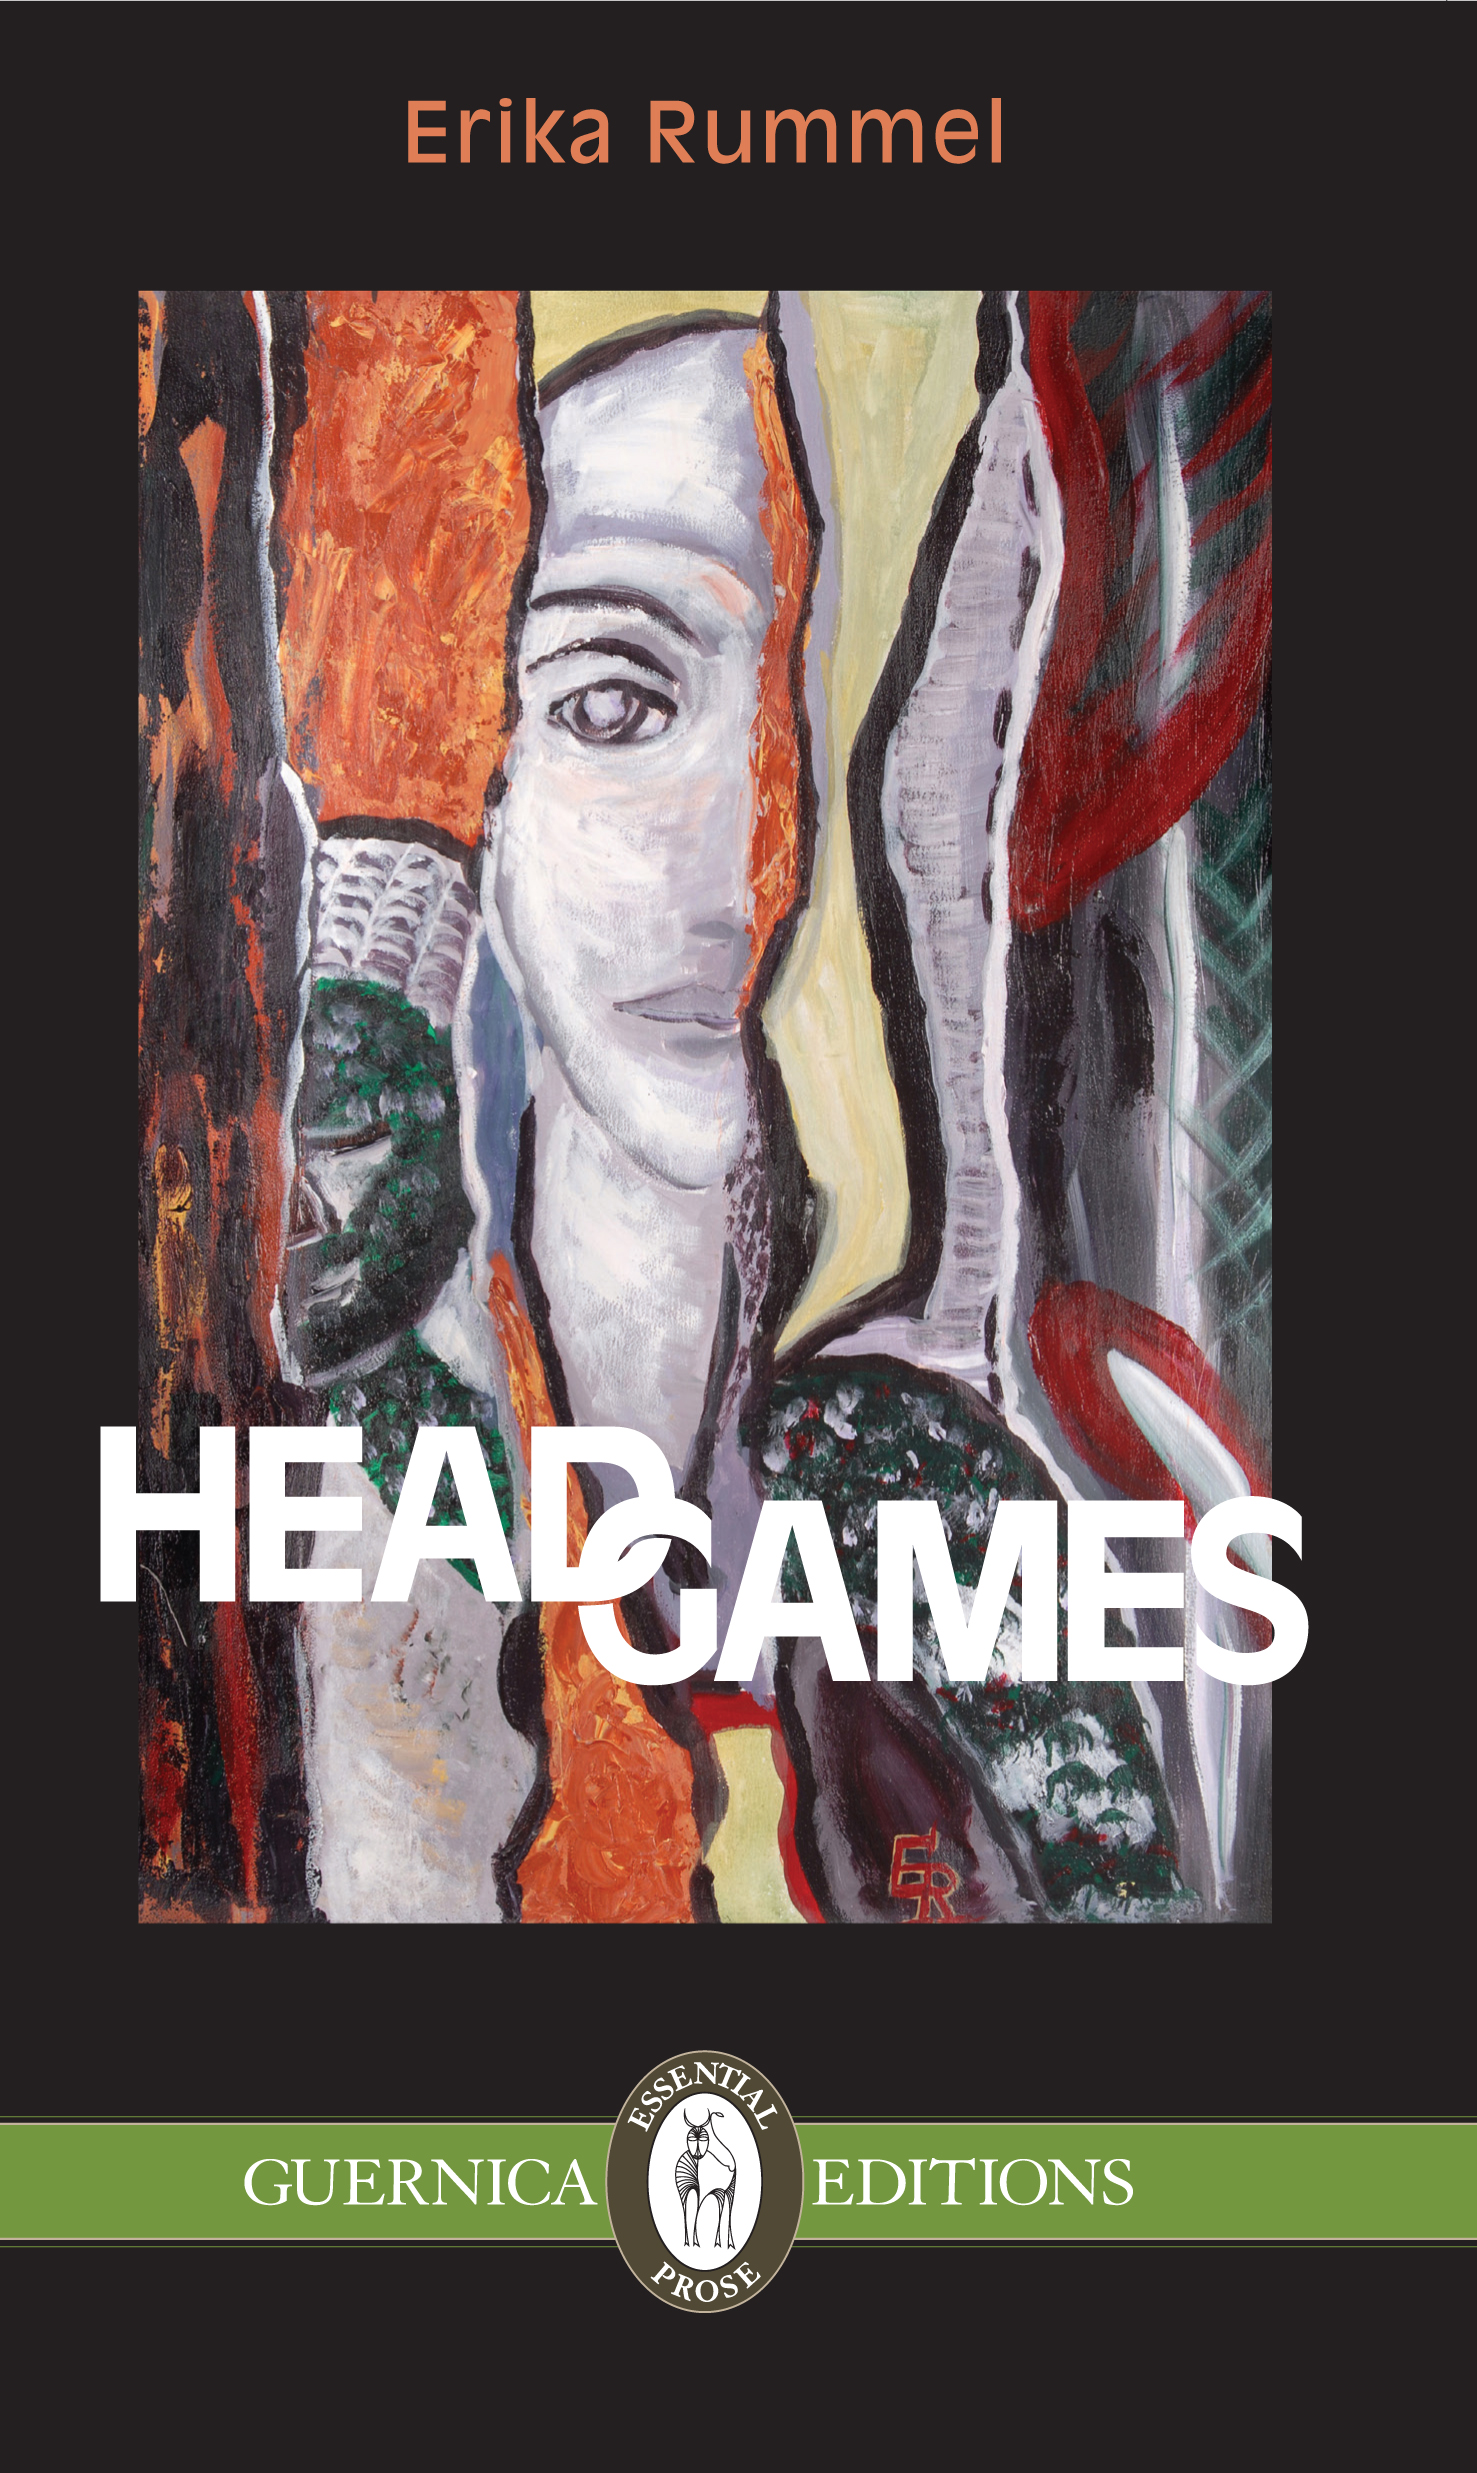 About Head Games, Novel by Erika Rummel